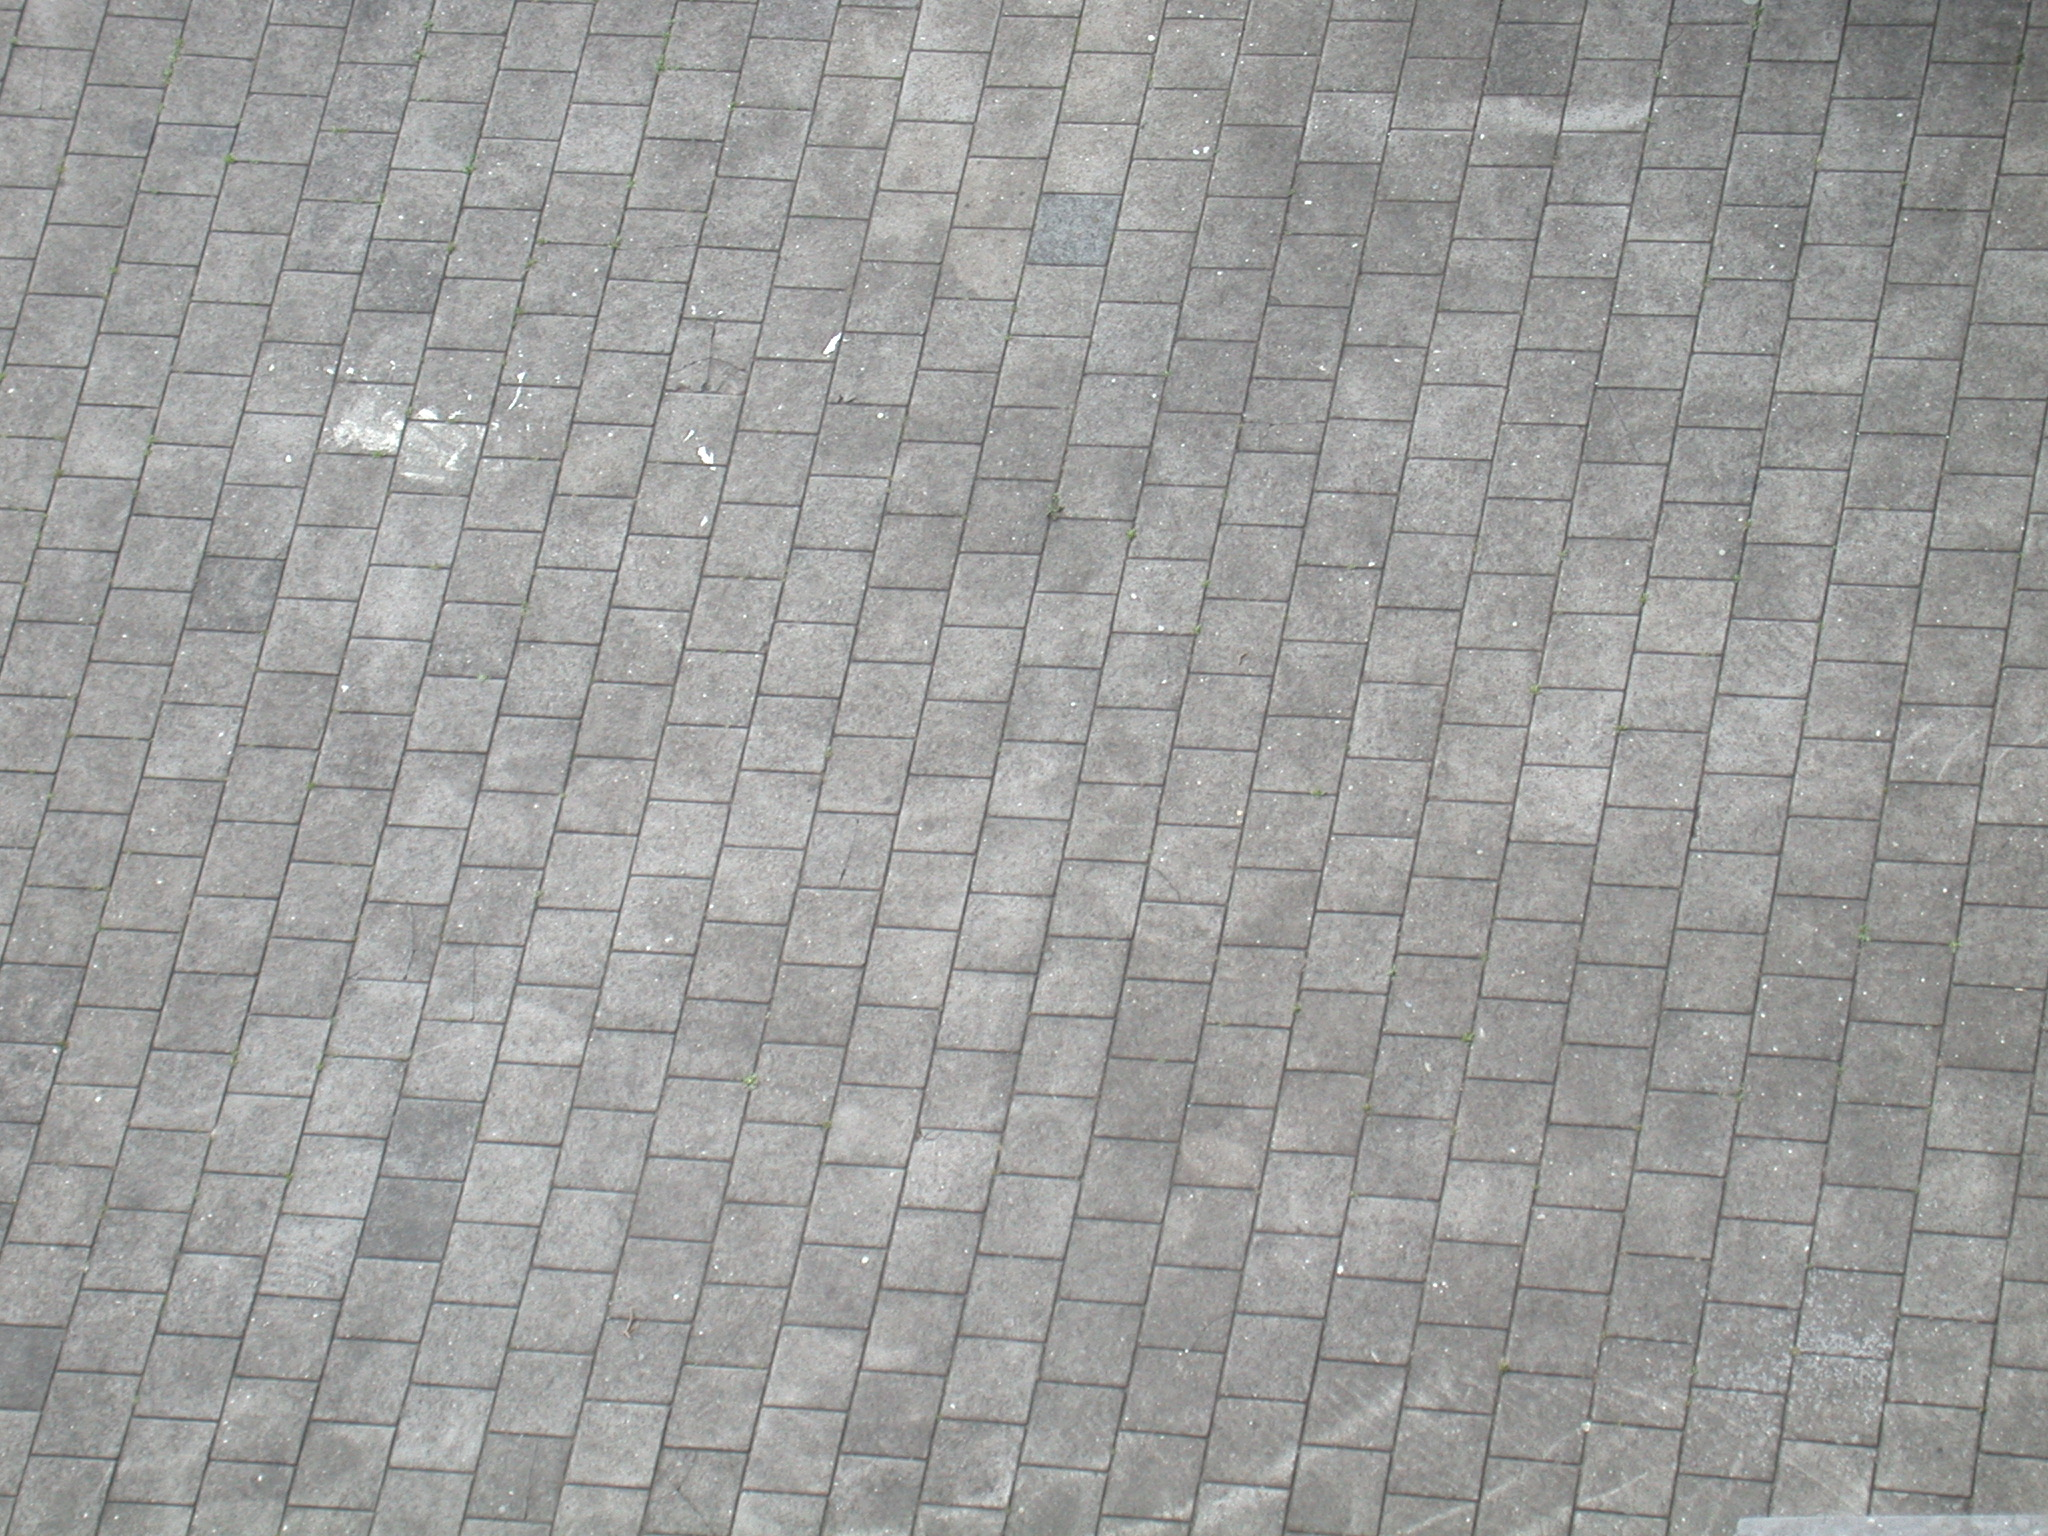 Image*After : textures : textures ground tiles pavement ...